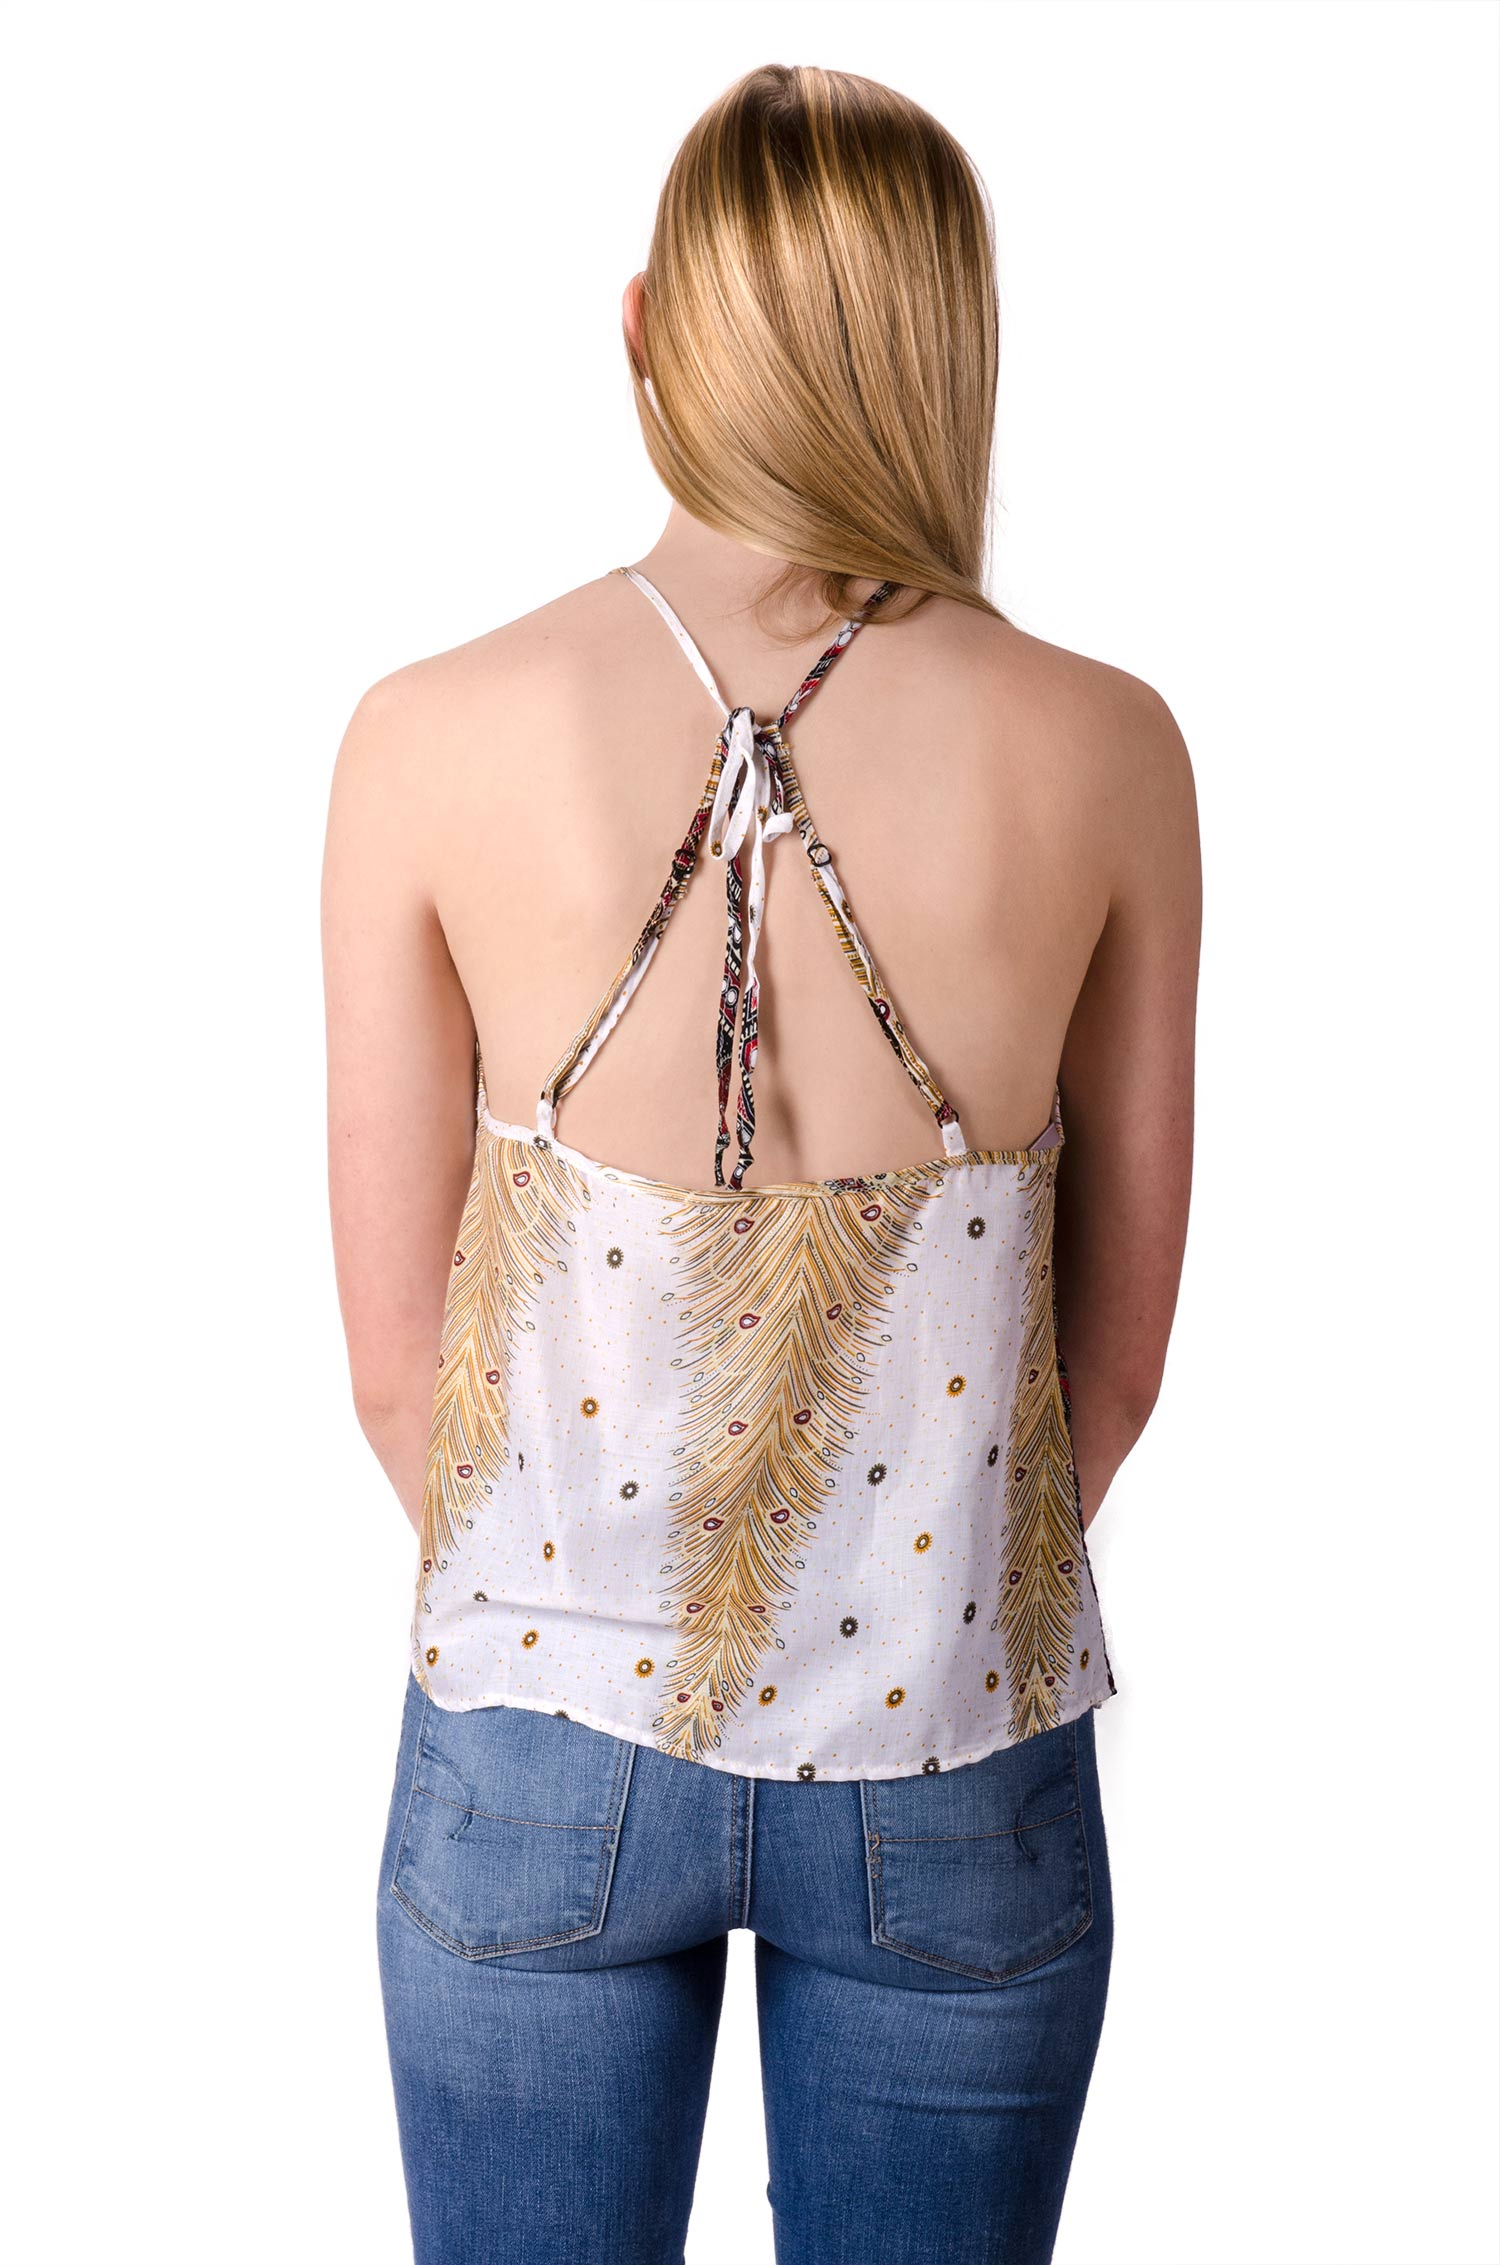 Peacock Print Cami Top - White Multi - 4485W